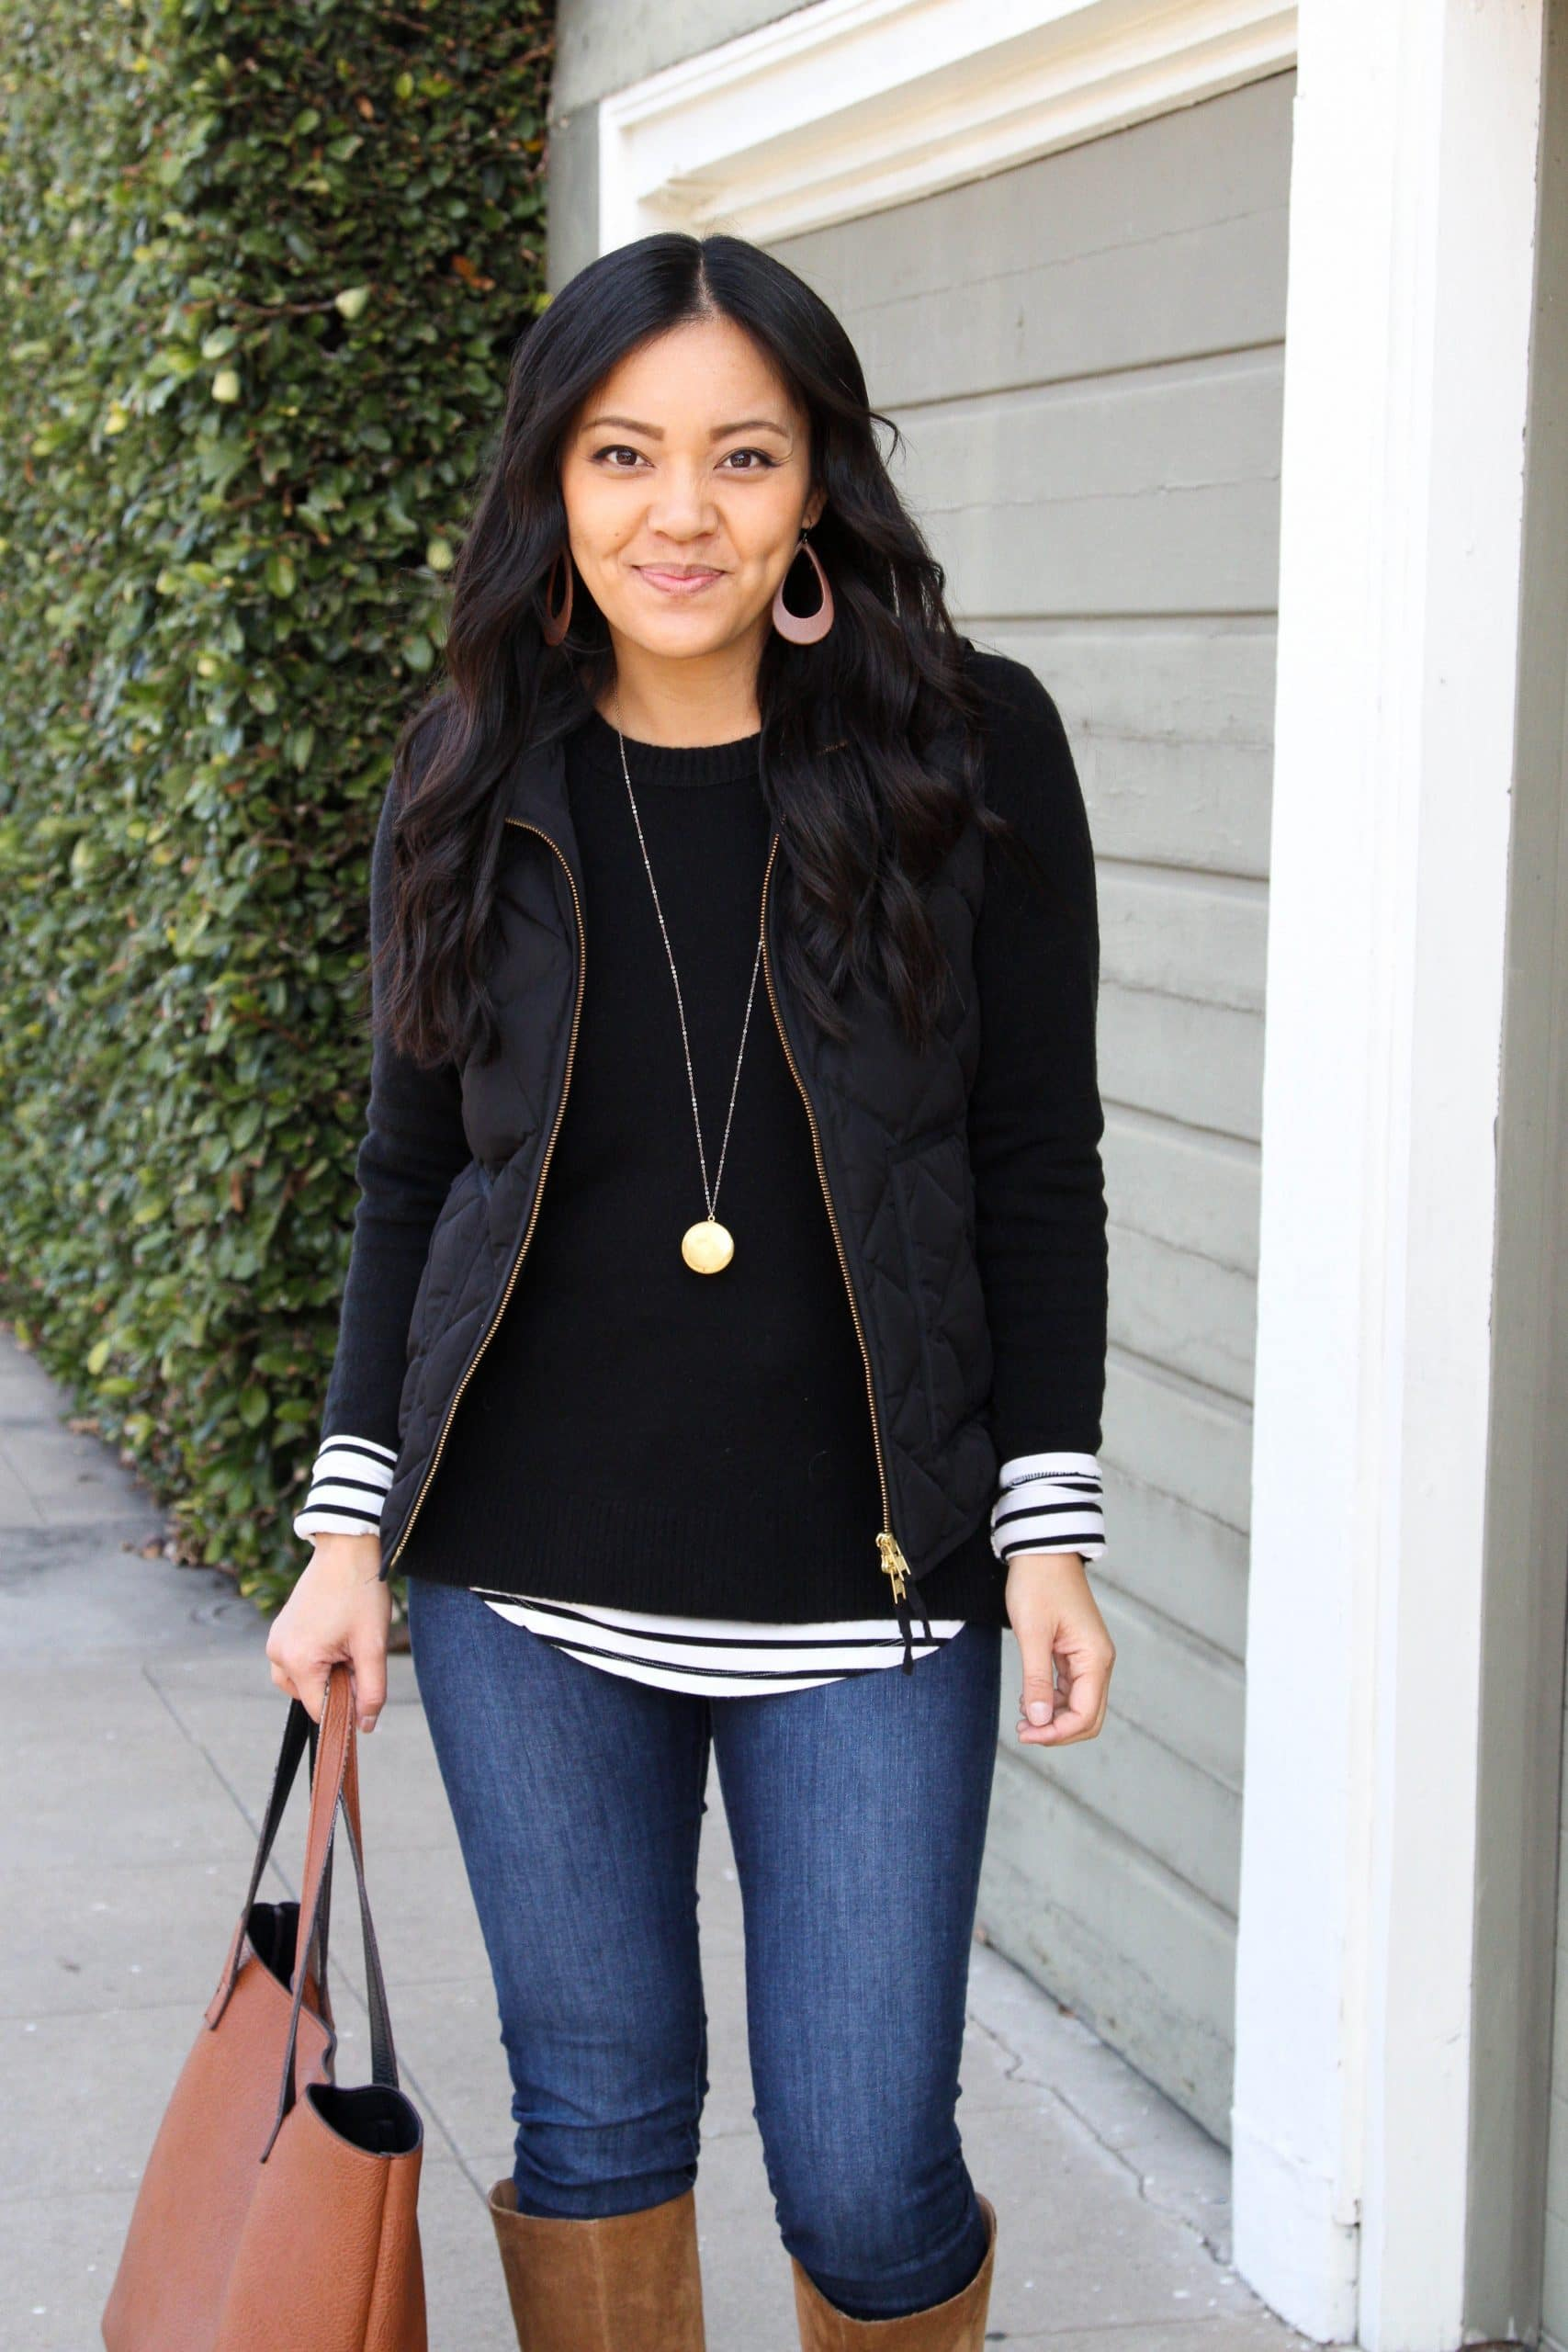 Winter Layering Outfit: black quilted vest + striped tee + black crewneck sweater + skinny jeans + cognac suede boots + gold pendant necklace + cognac tote